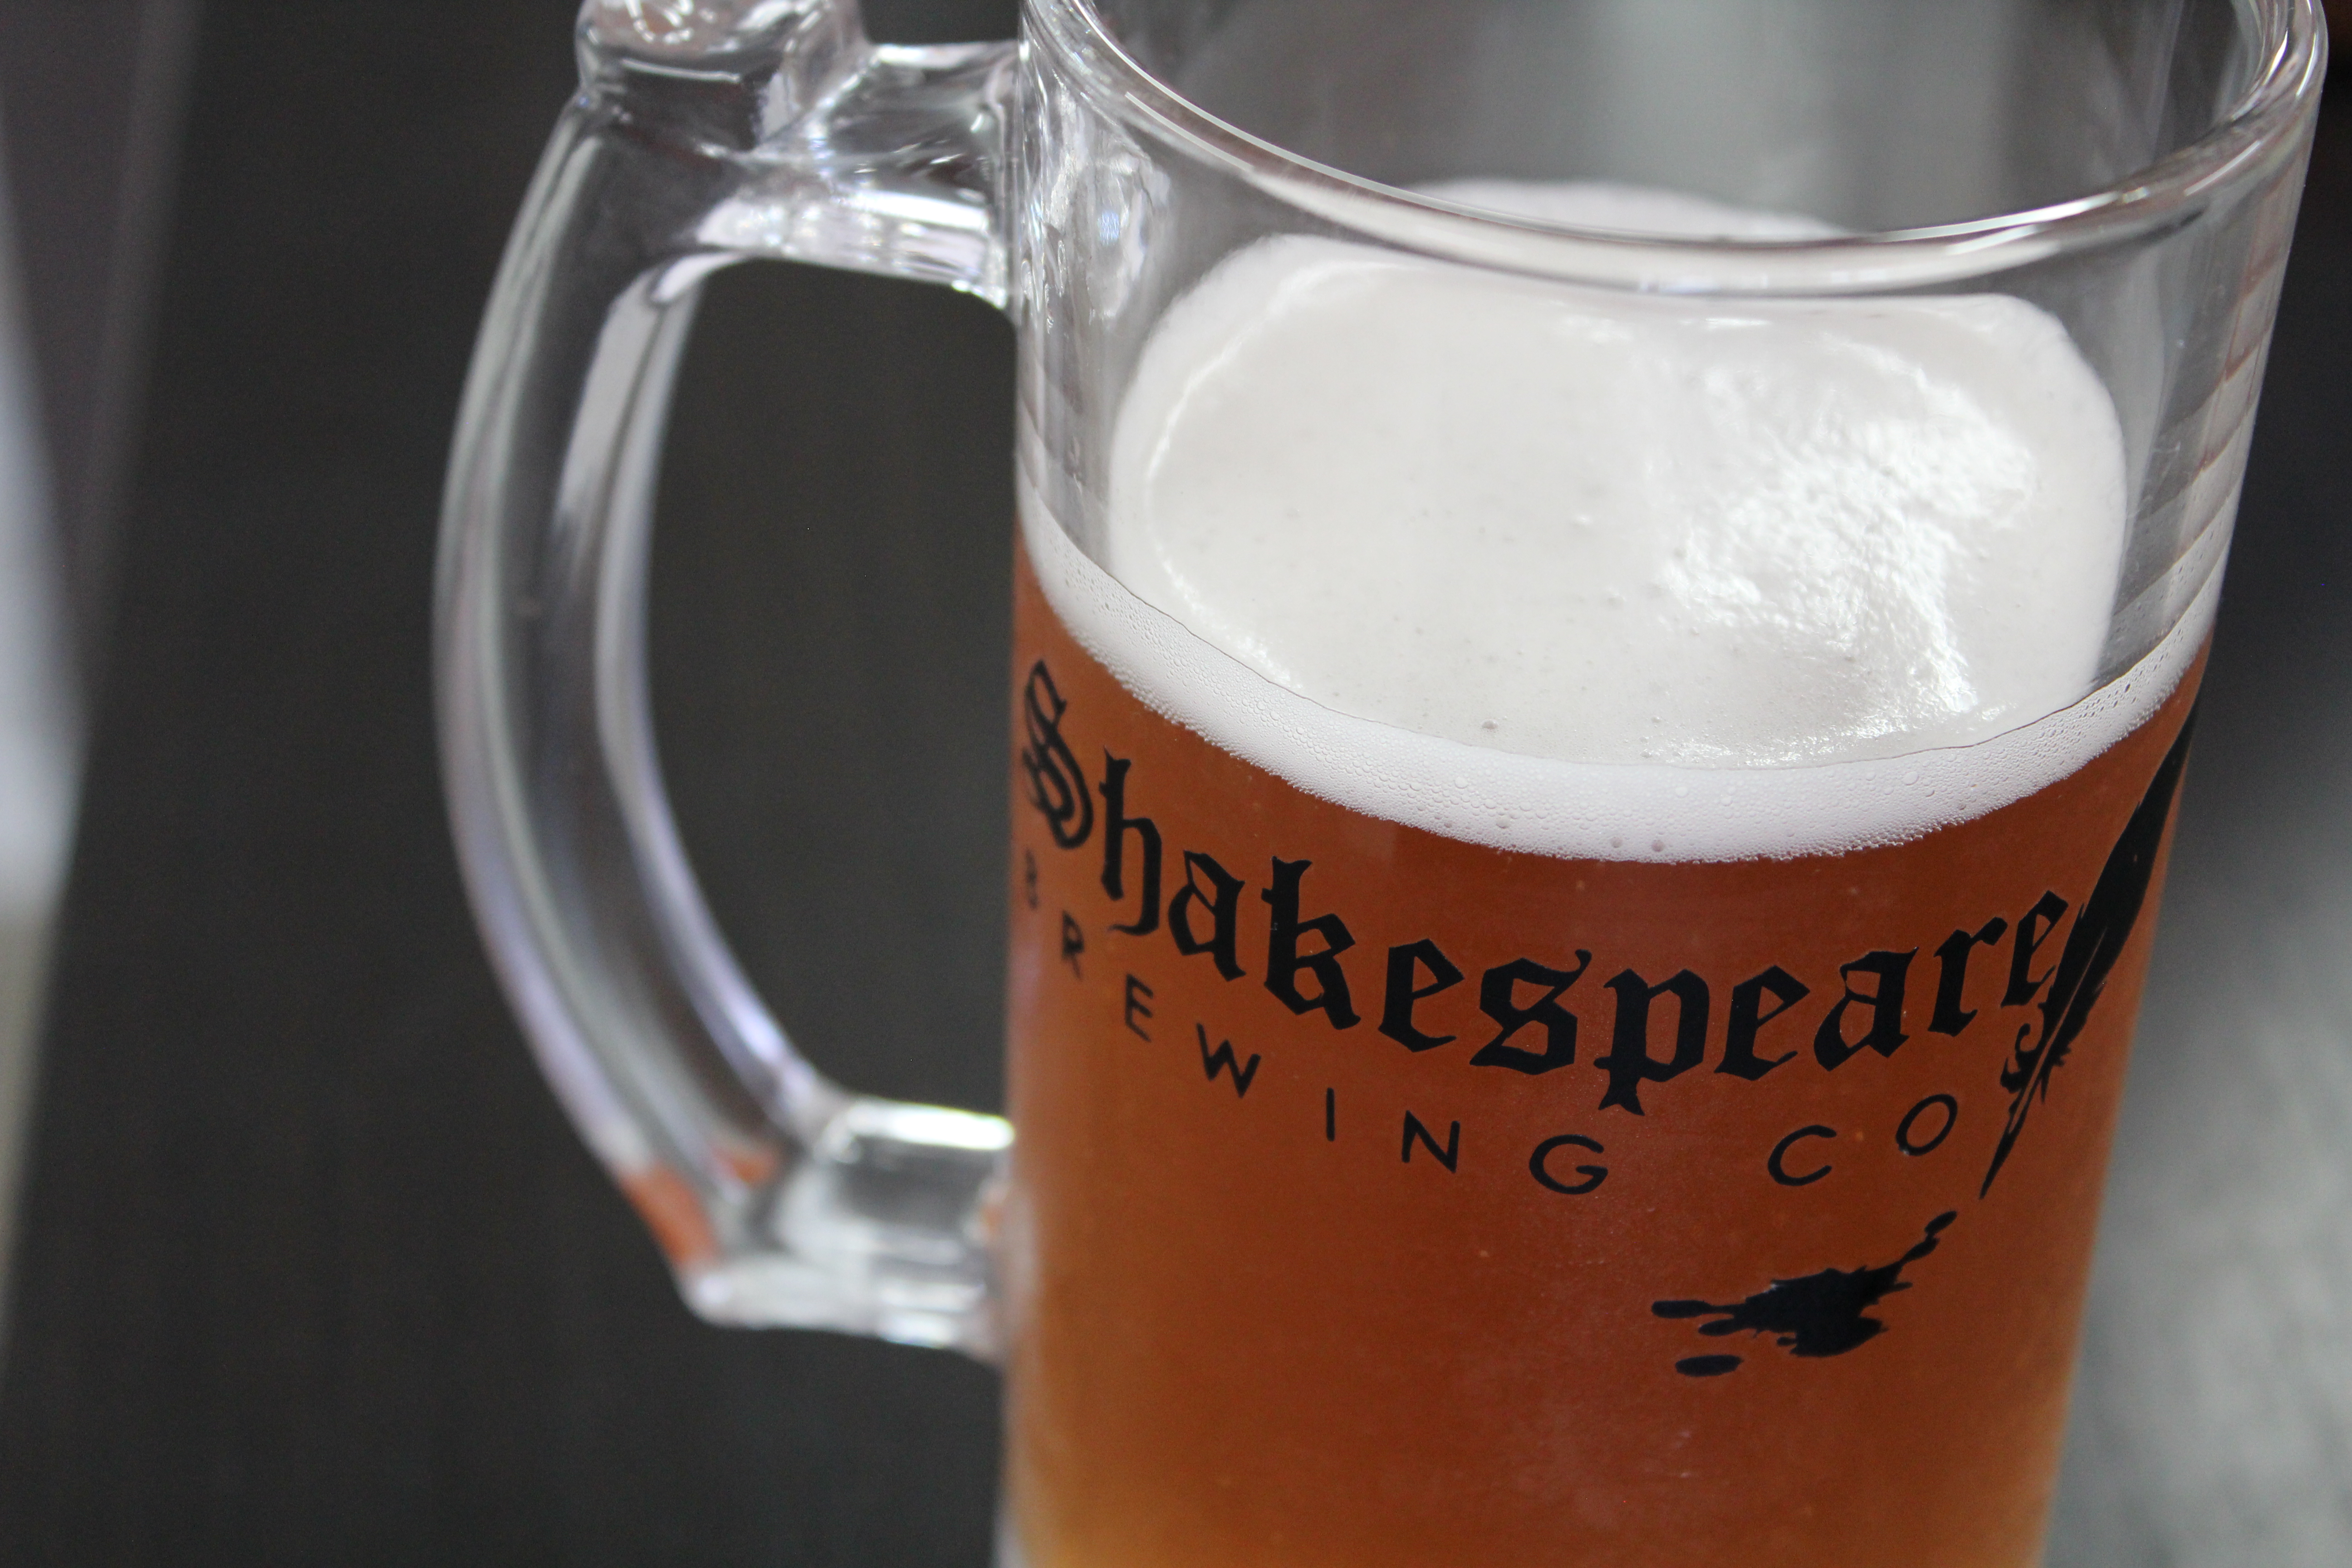 Shakespeare Brewing Company image 2